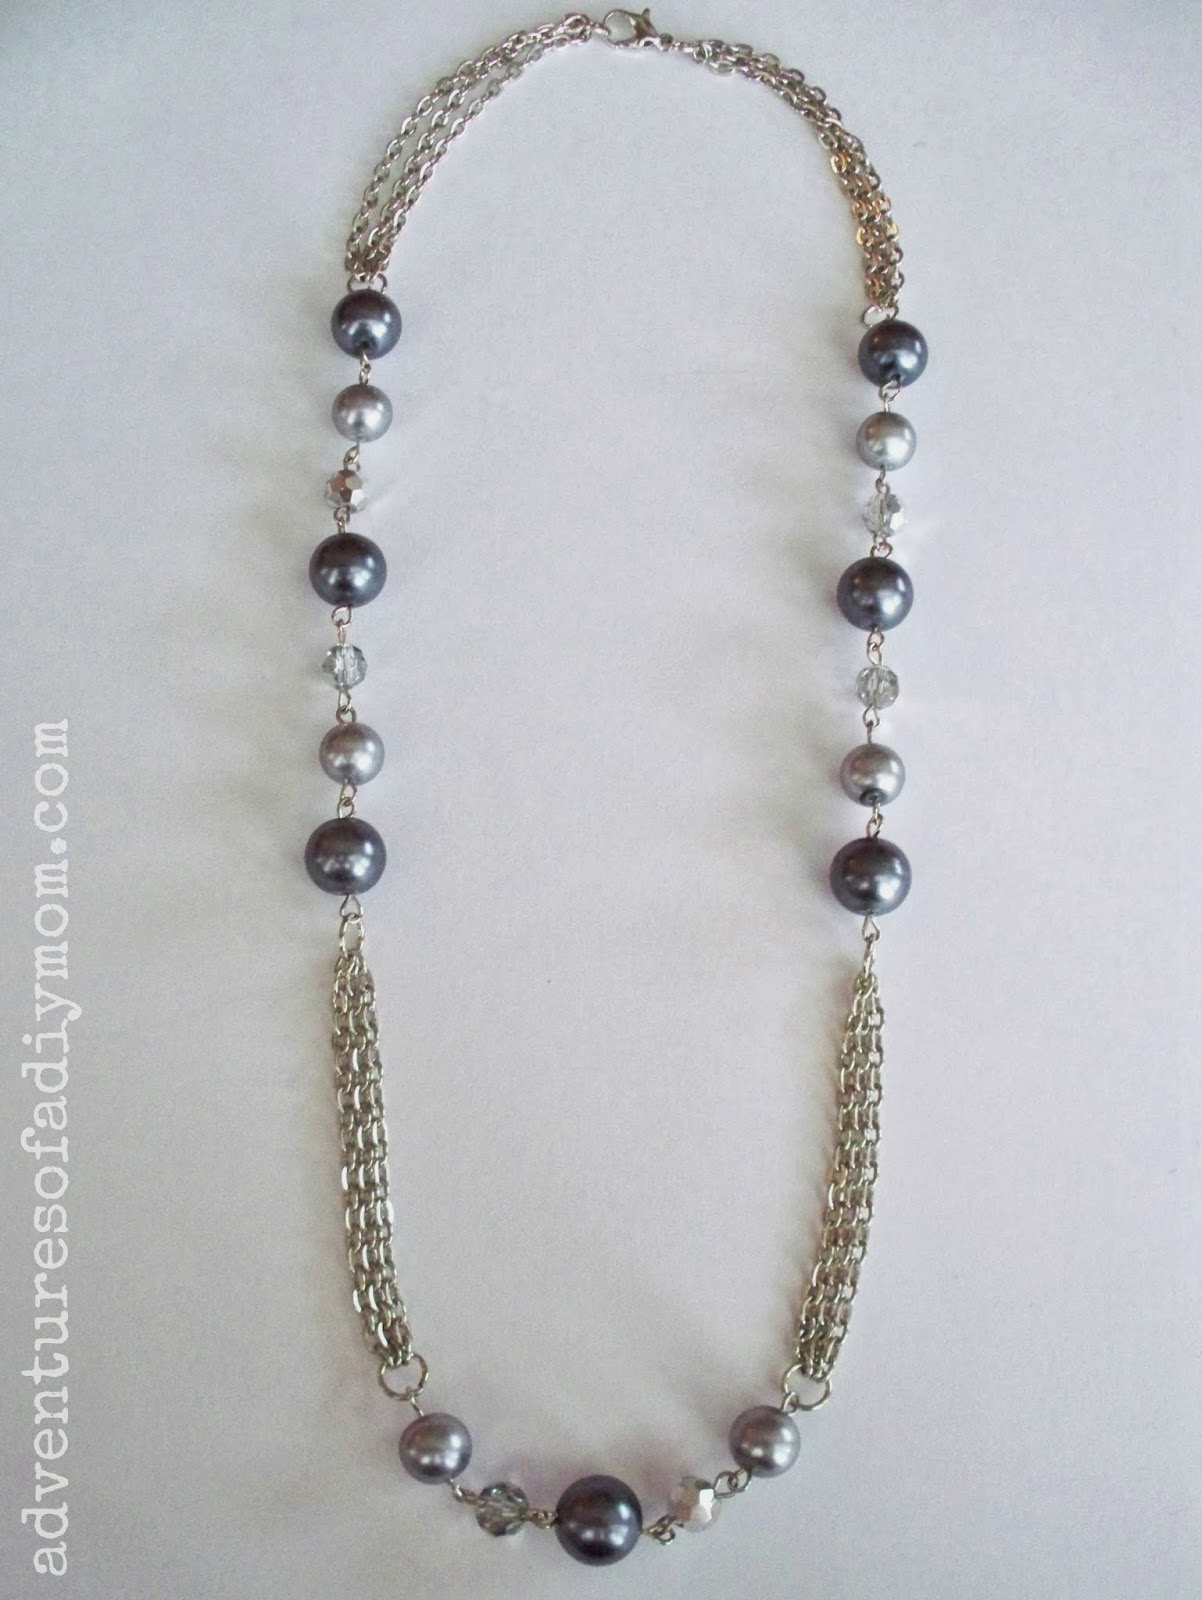 Adventures of a DIY Mom: How to Make a Chain and Bead Necklace